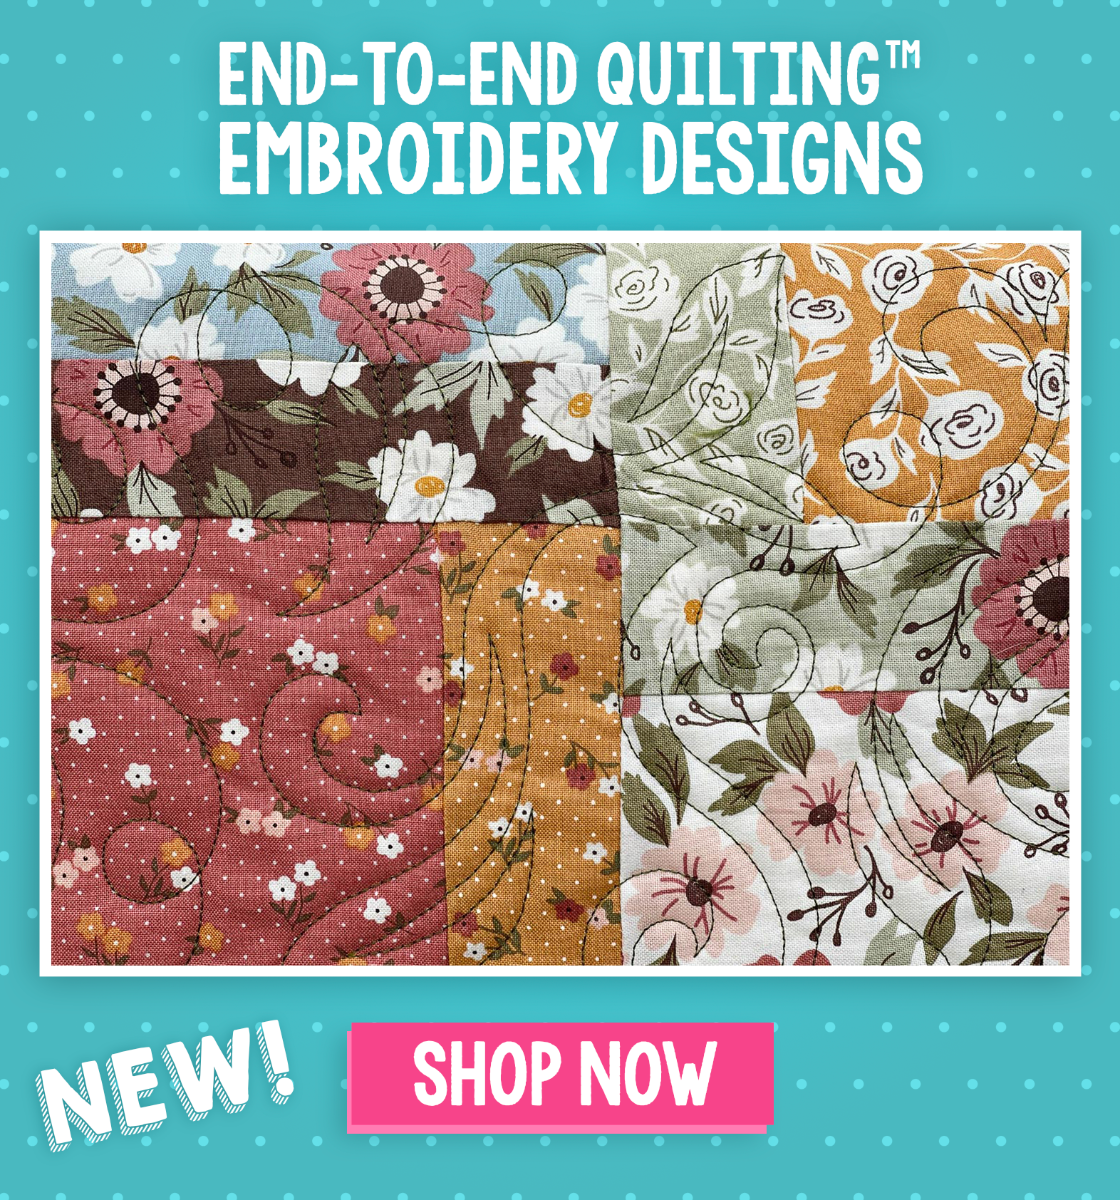 End-to-End Quilting Embroidery Designs